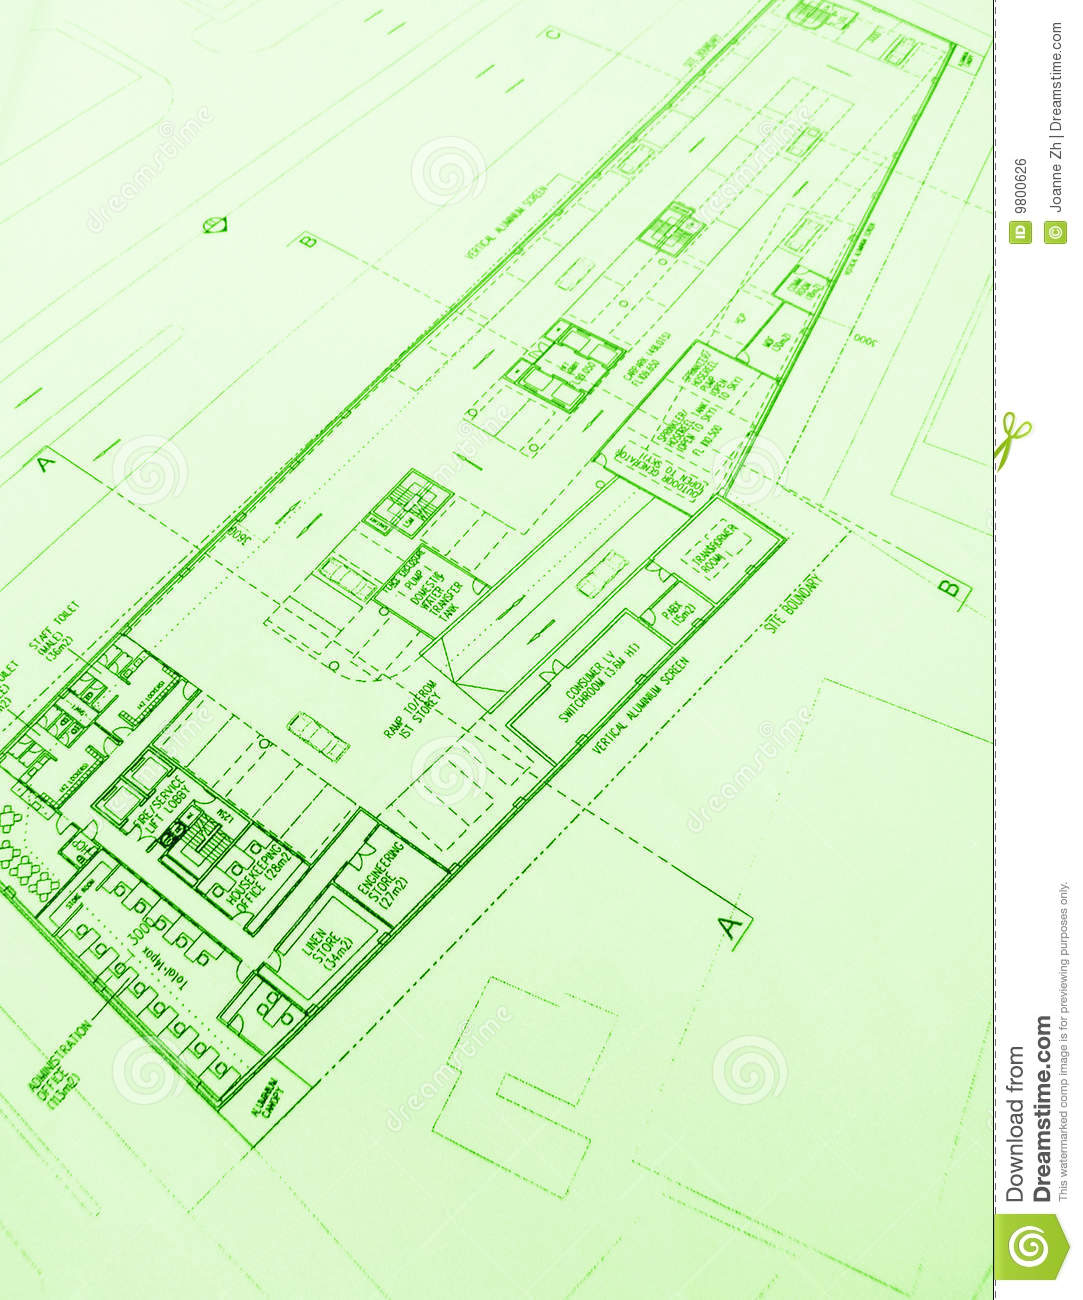 Commercial Architecture Floor Layout Plans Royalty Free ...